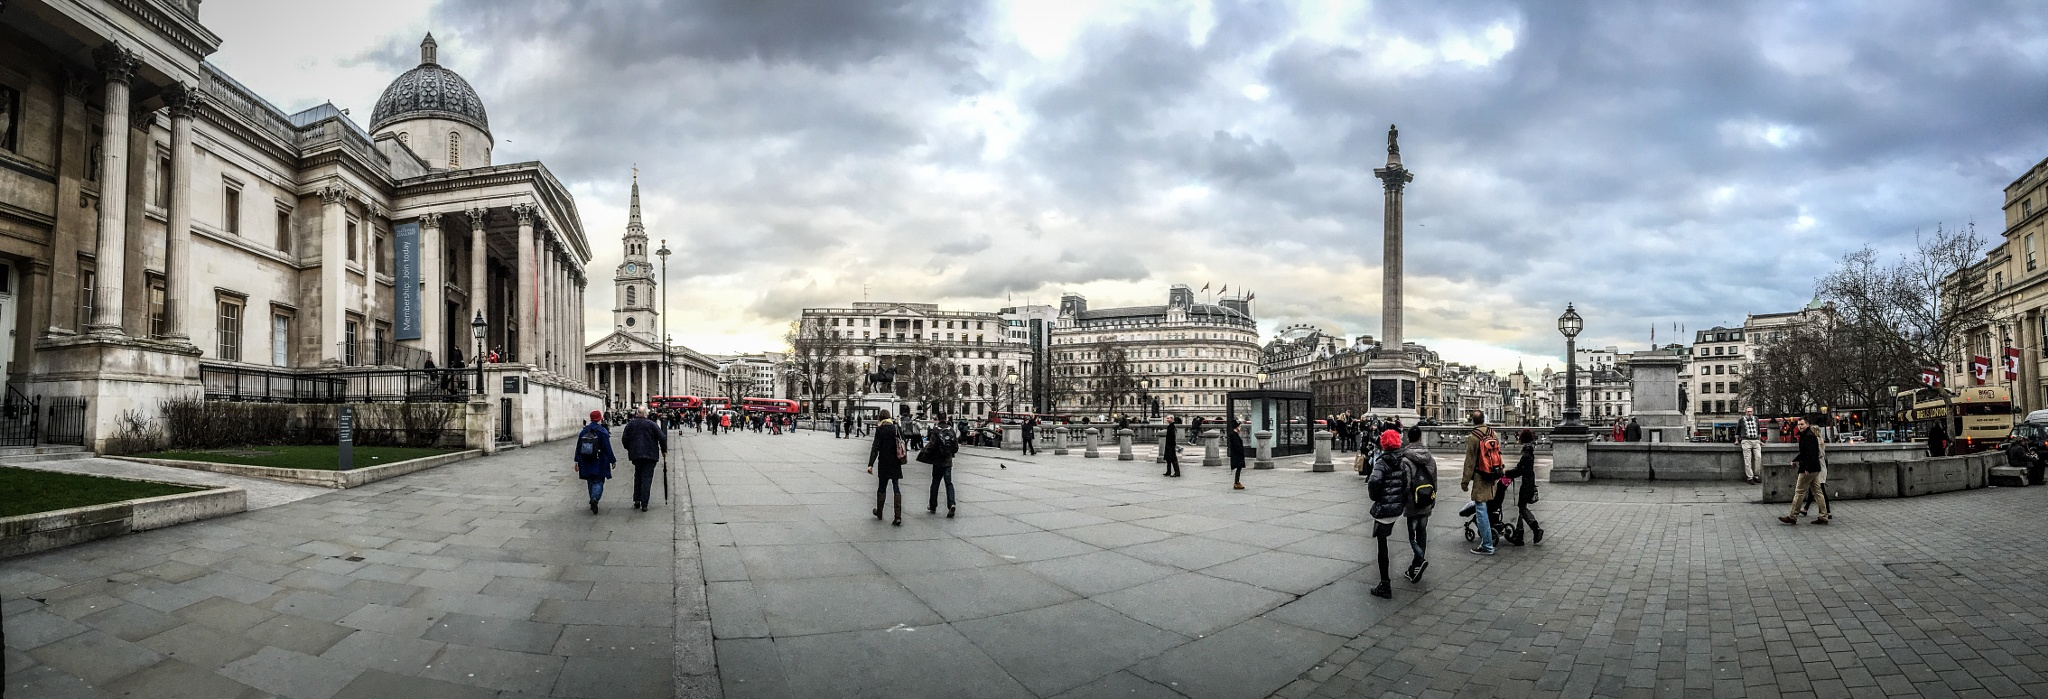 Trafalgar Square, London by FotoFlingScotland